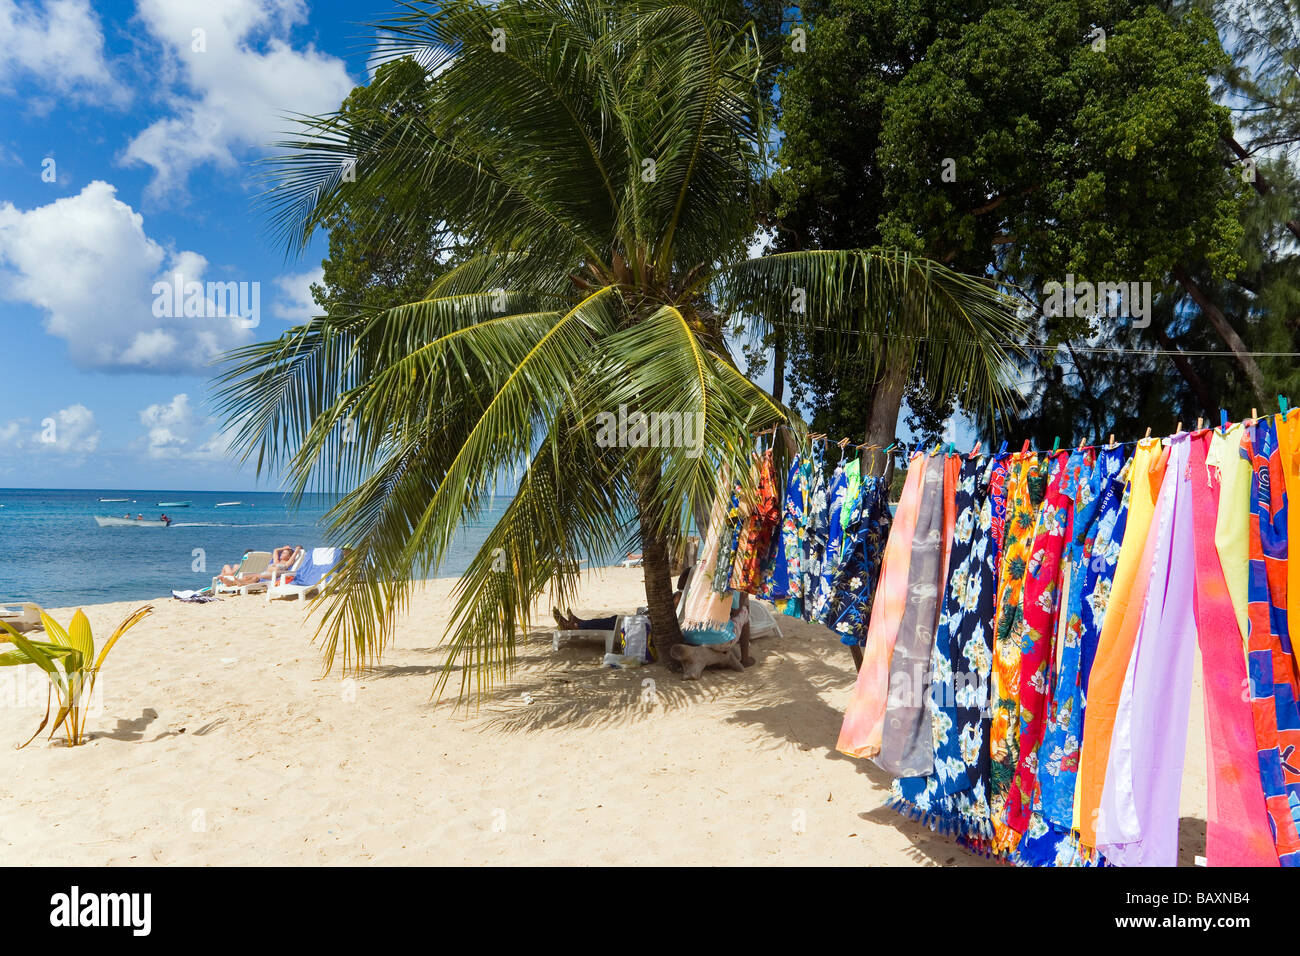 Souvenir stall at beach, Speightstown, Barbados, Caribbean - Stock Image